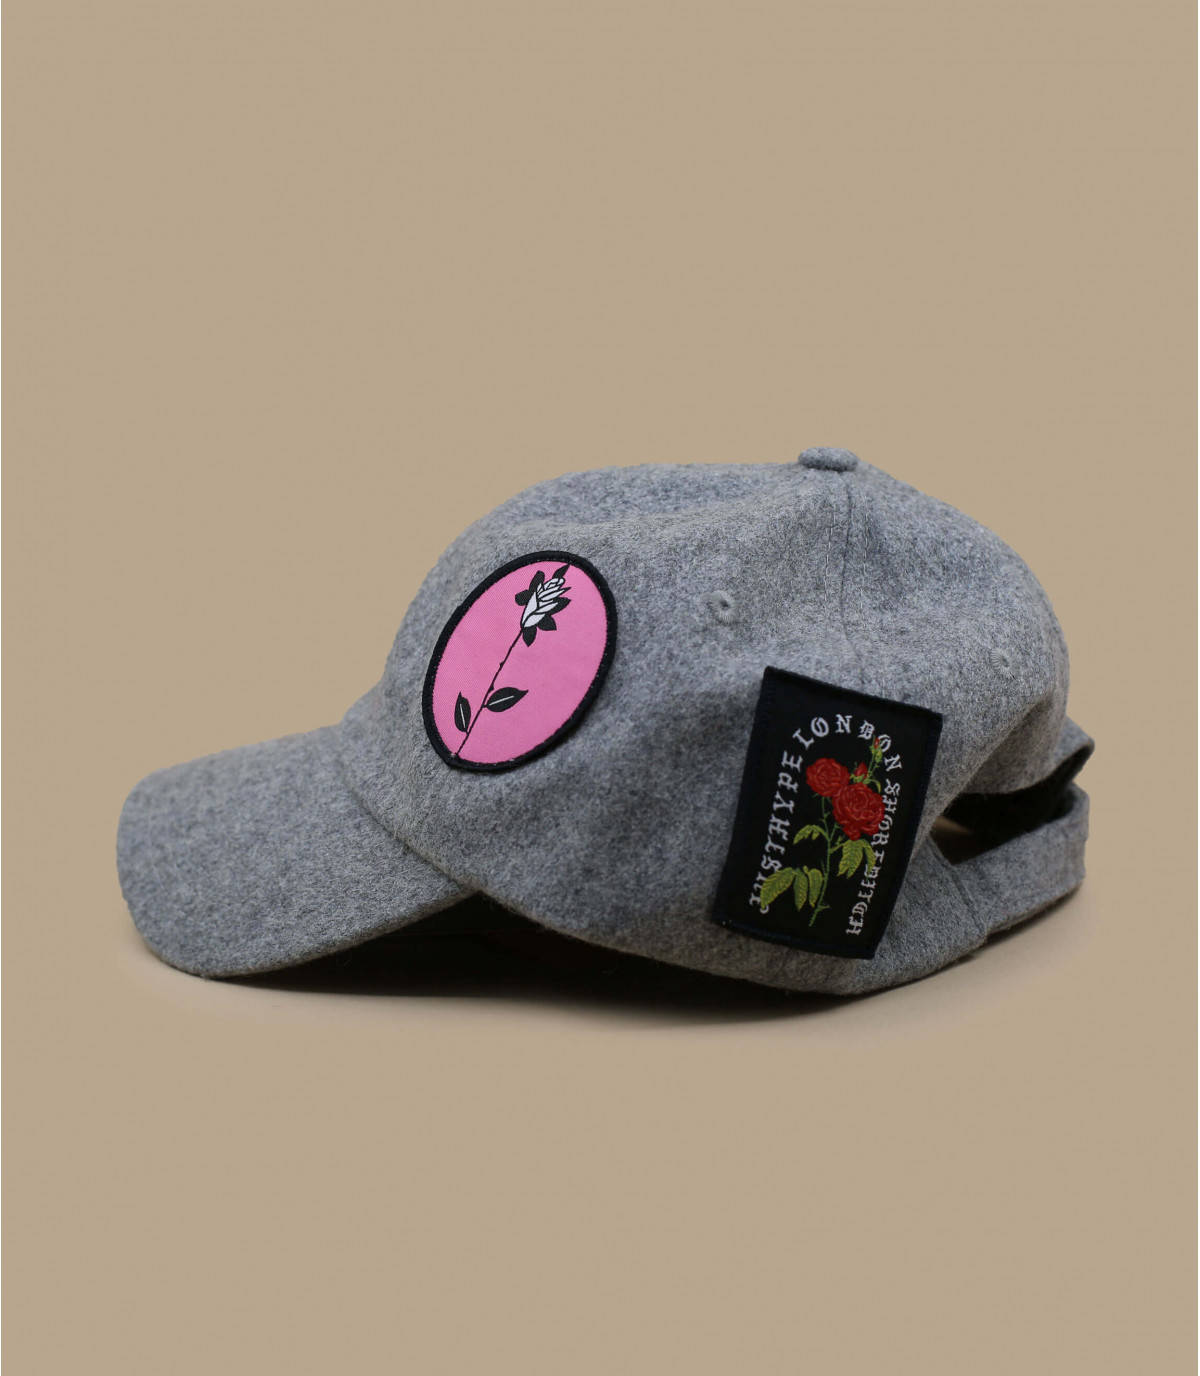 Dettagli Wolly Patches Dad Cap - image 2